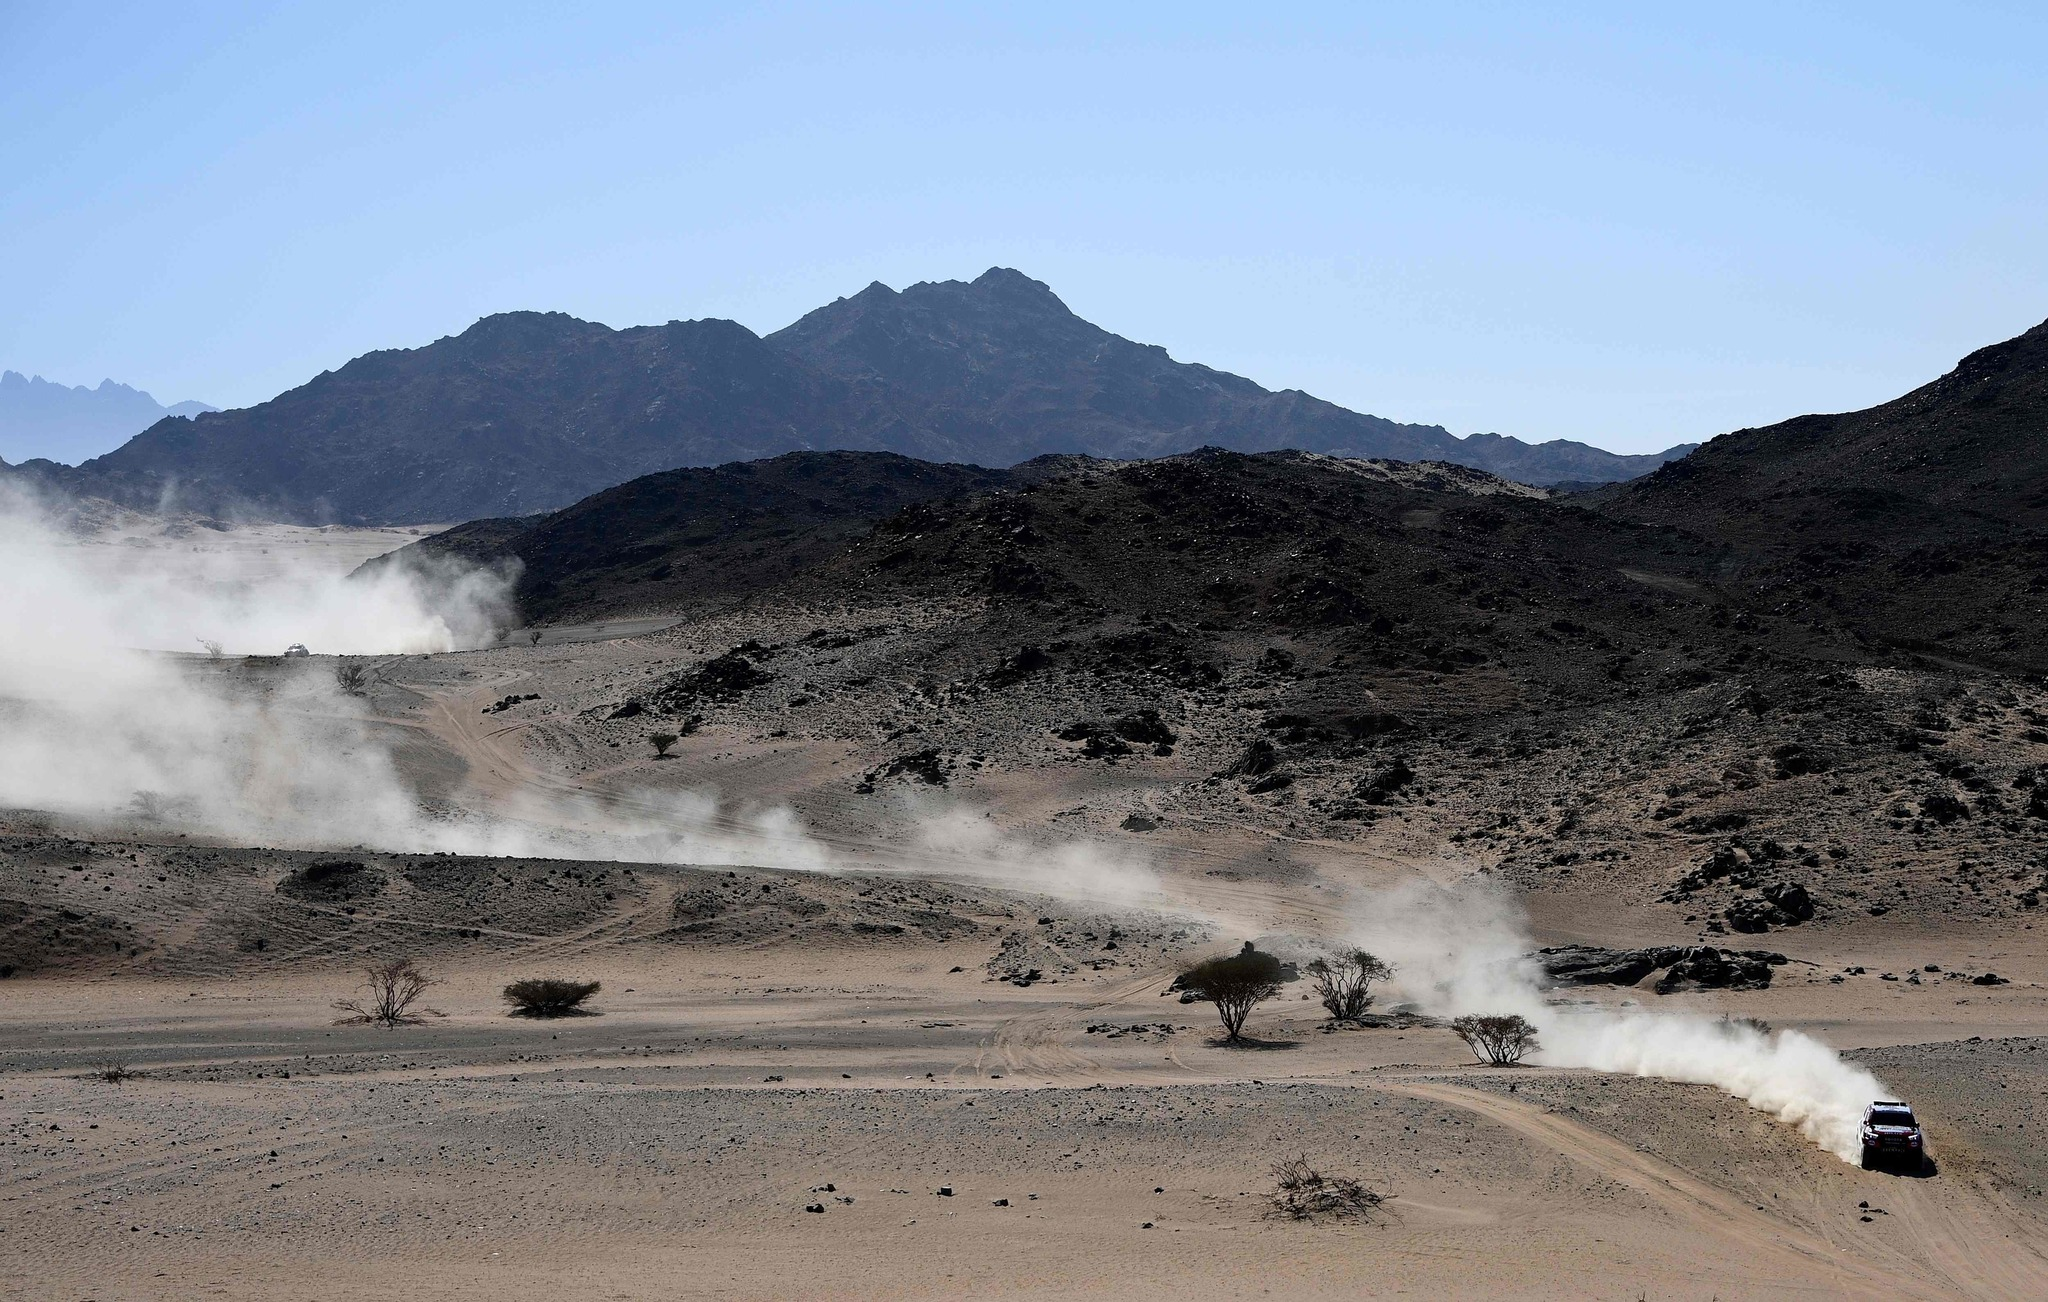 Toyotas Hilux Gazoo racing driver Frenando <HIT>Alonso</HIT> of Spain and co-driver Marc Coma of Spain compete during the Stage 1 of the Dakar 2020 between Jeddah and Al Wajh, Saudi Arabia, on January 5, 2020. (Photo by FRANCK FIFE / AFP)